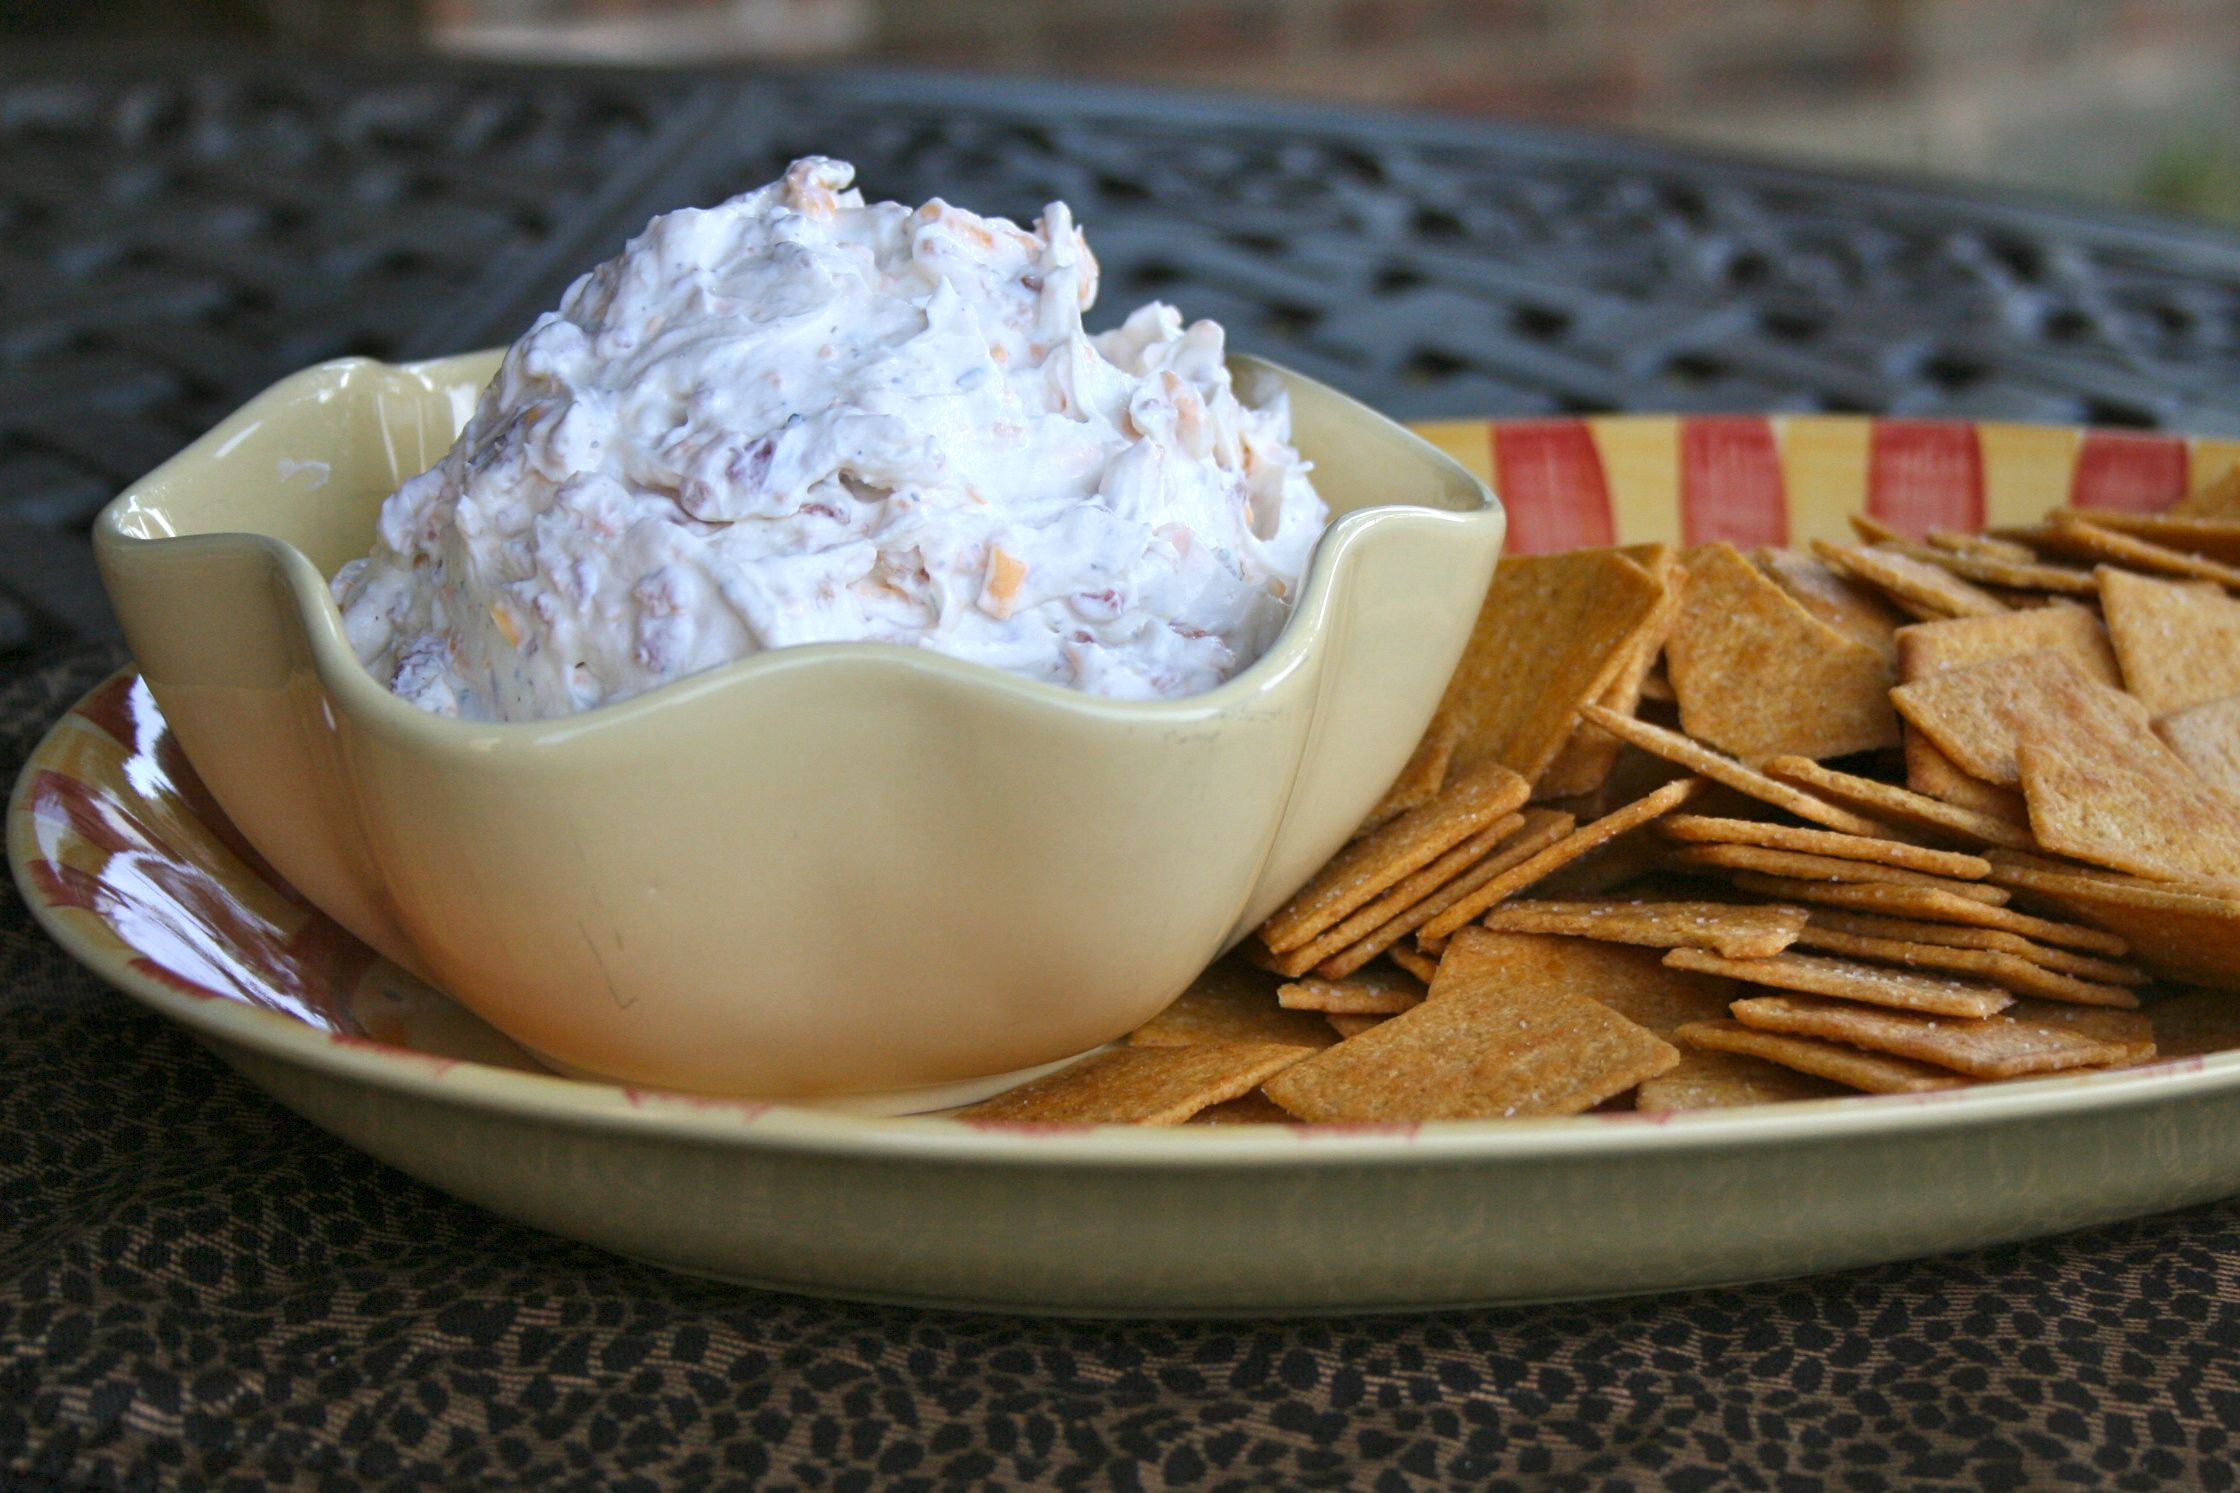 DEFINITELYLEOPARD.COM: Cheddar Bacon Ranch Dip a.k.a. The World's Most Addictive Dip